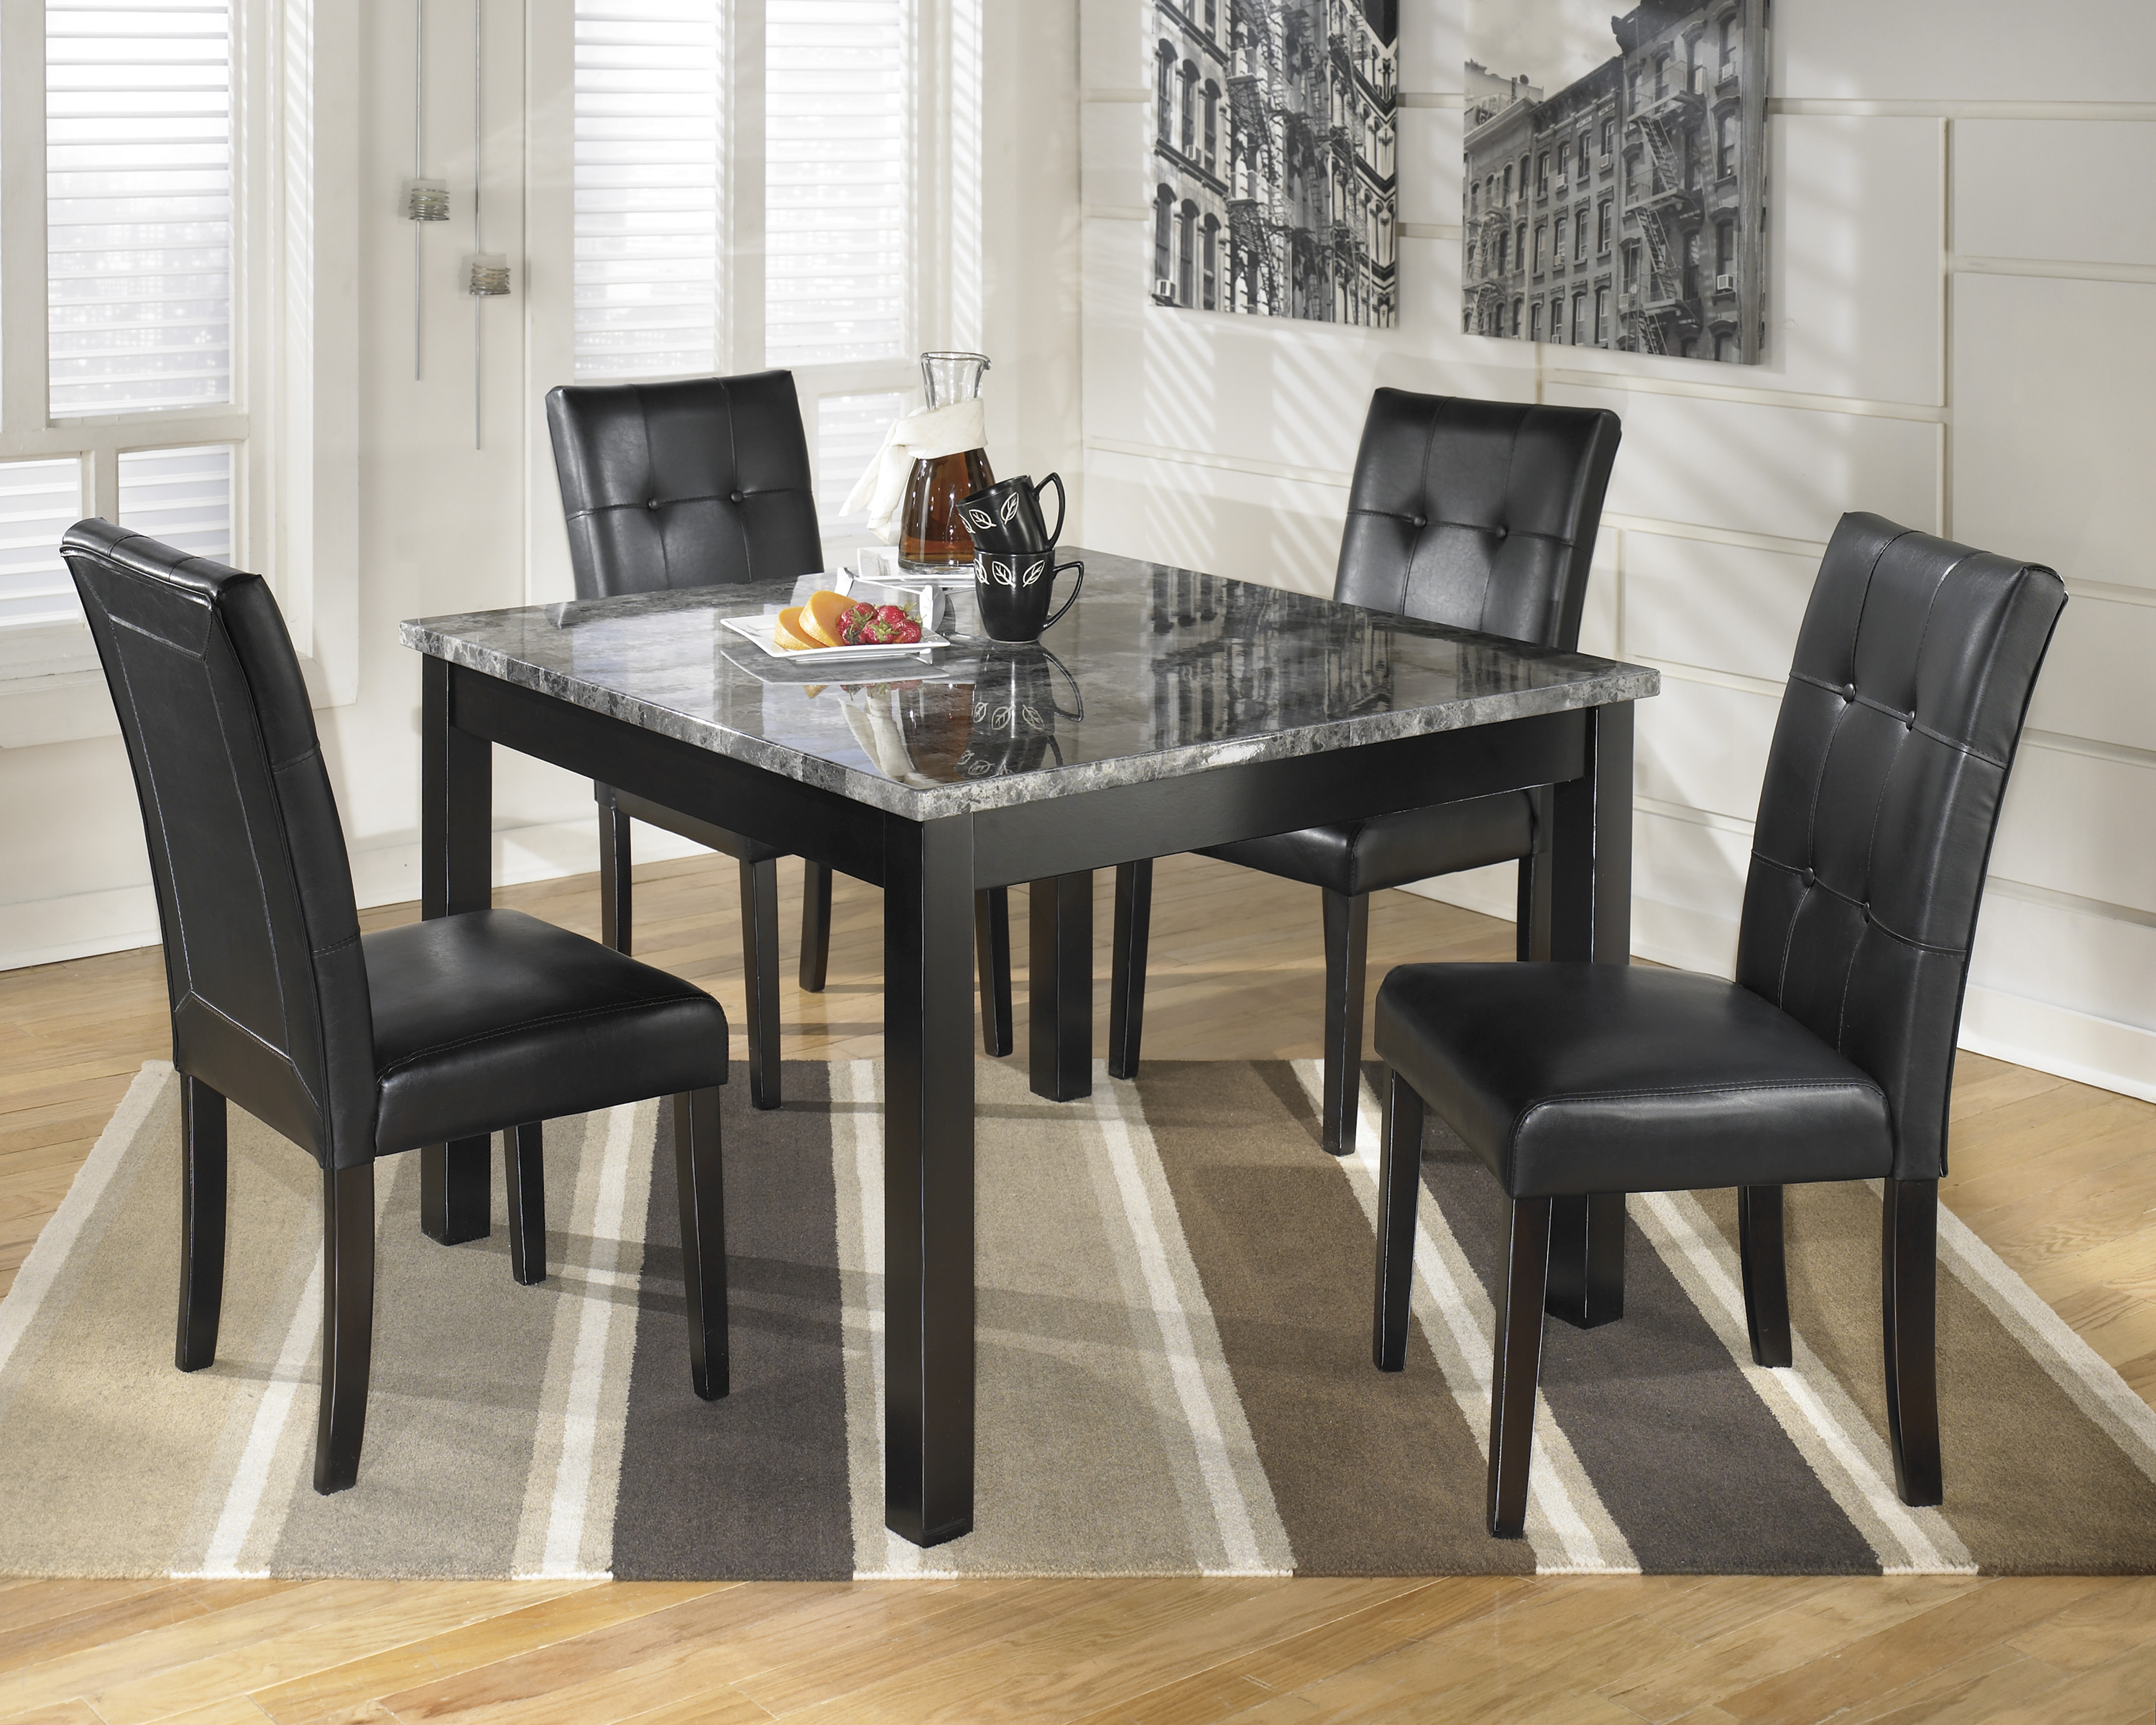 overview the maysvilles square shape offers comfortable dining - Square Kitchen Table Sets For 4